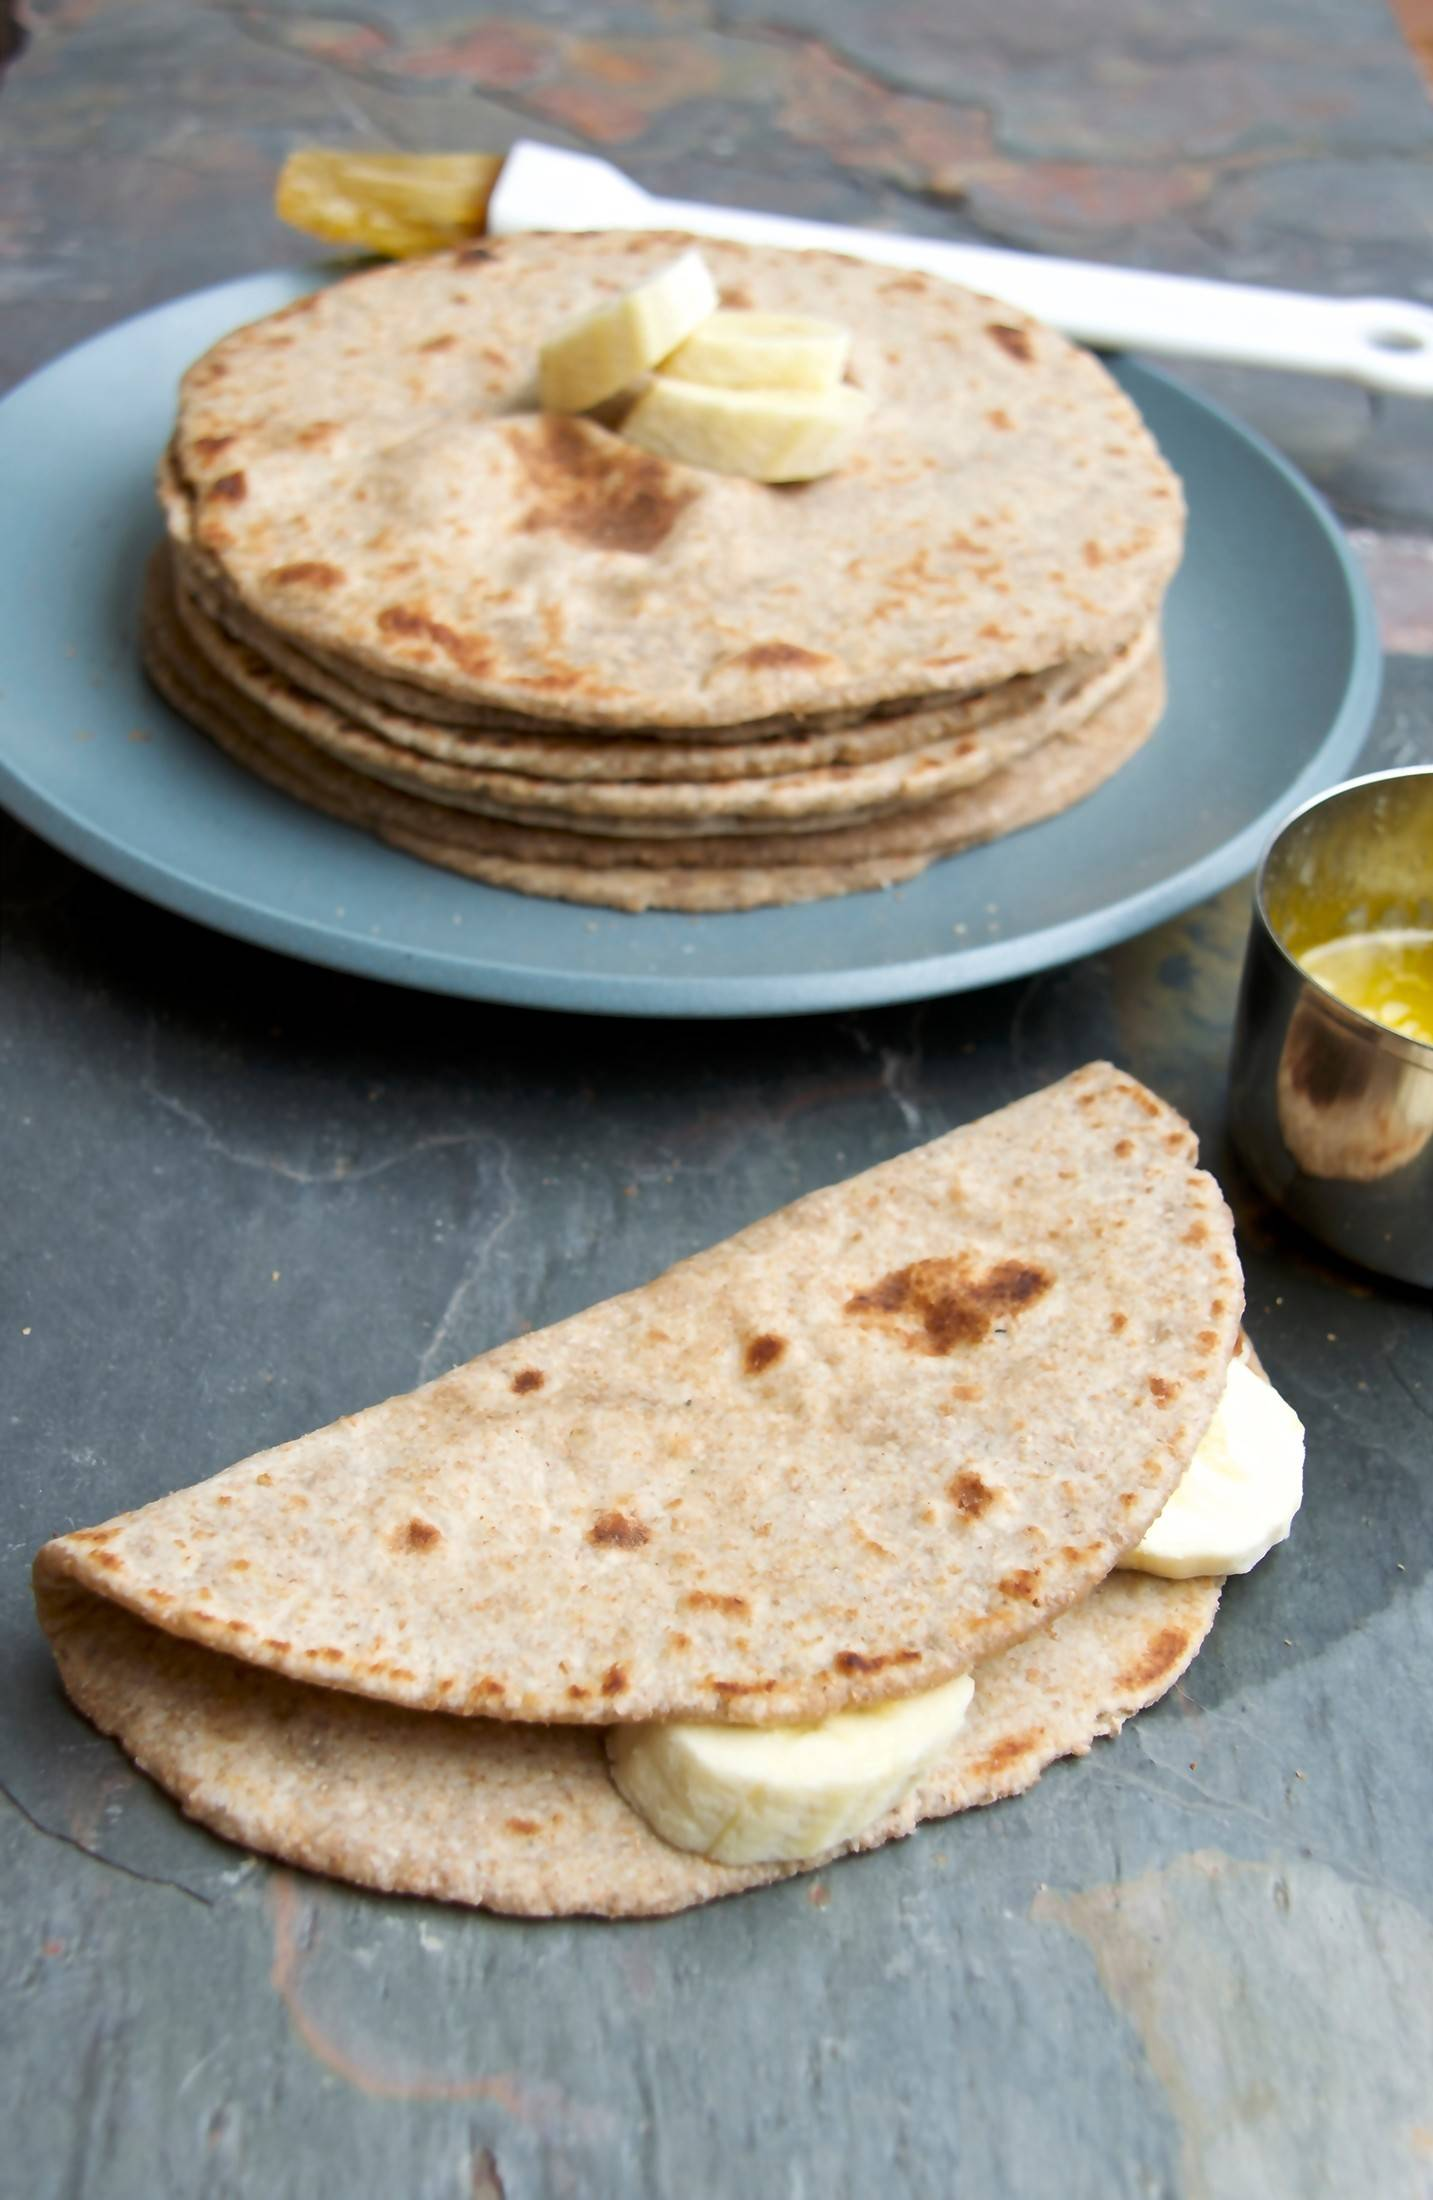 Whole-Wheat Banana Chapatis is a super-quick and tasty breakfast flatbread, sweetened with just a touch of raw sugar.